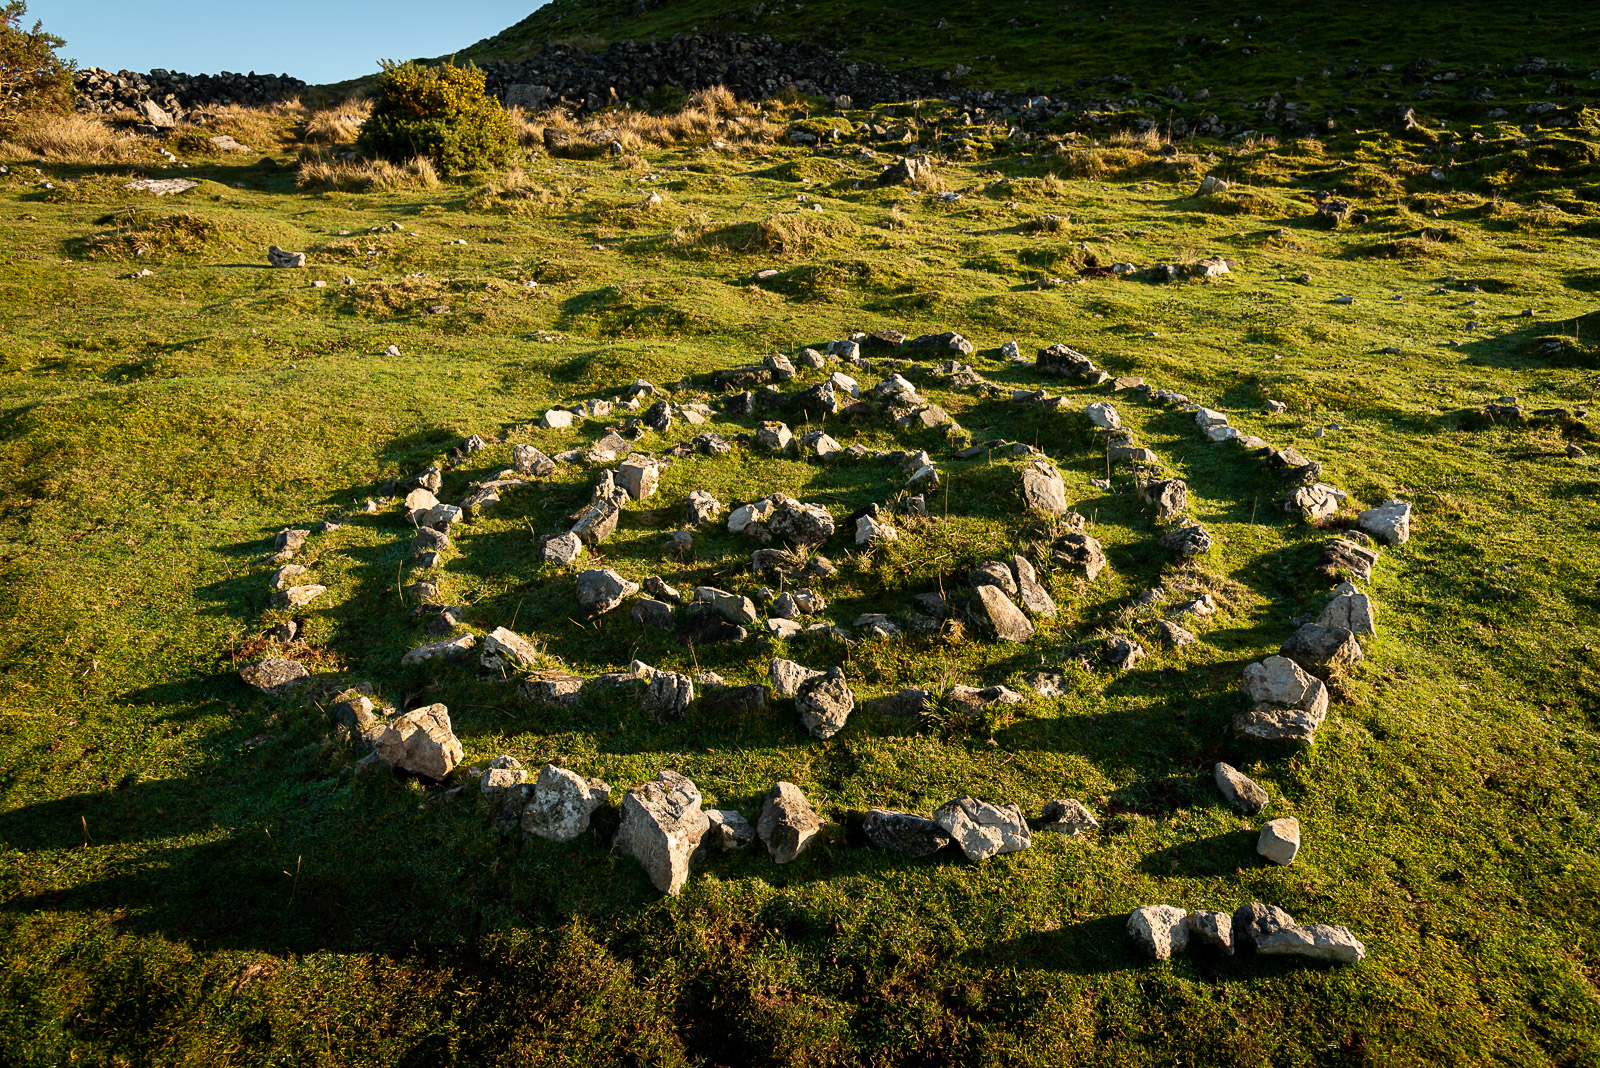 Stone Circle - Creak Peak, Somerset, UK. ID JB1_9626